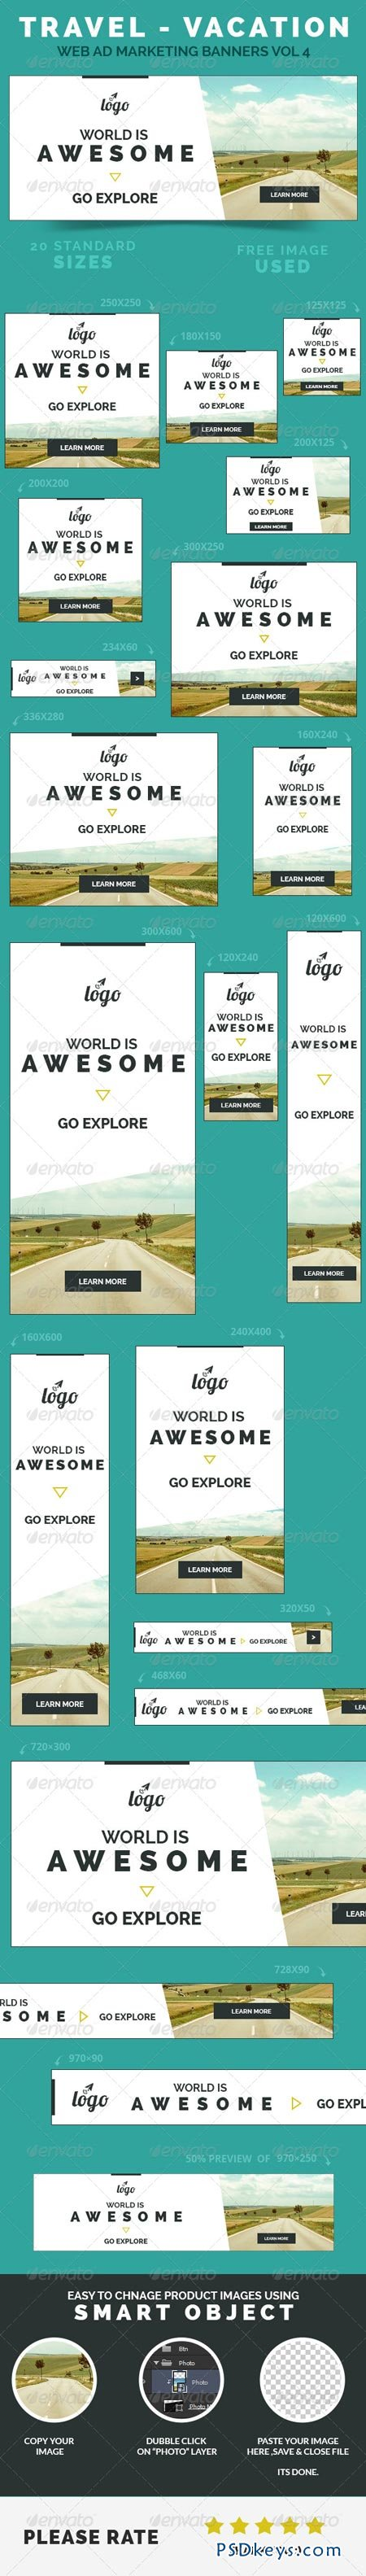 Travel - Vacation Web Ad Marketing Banners Vol 4 8500668